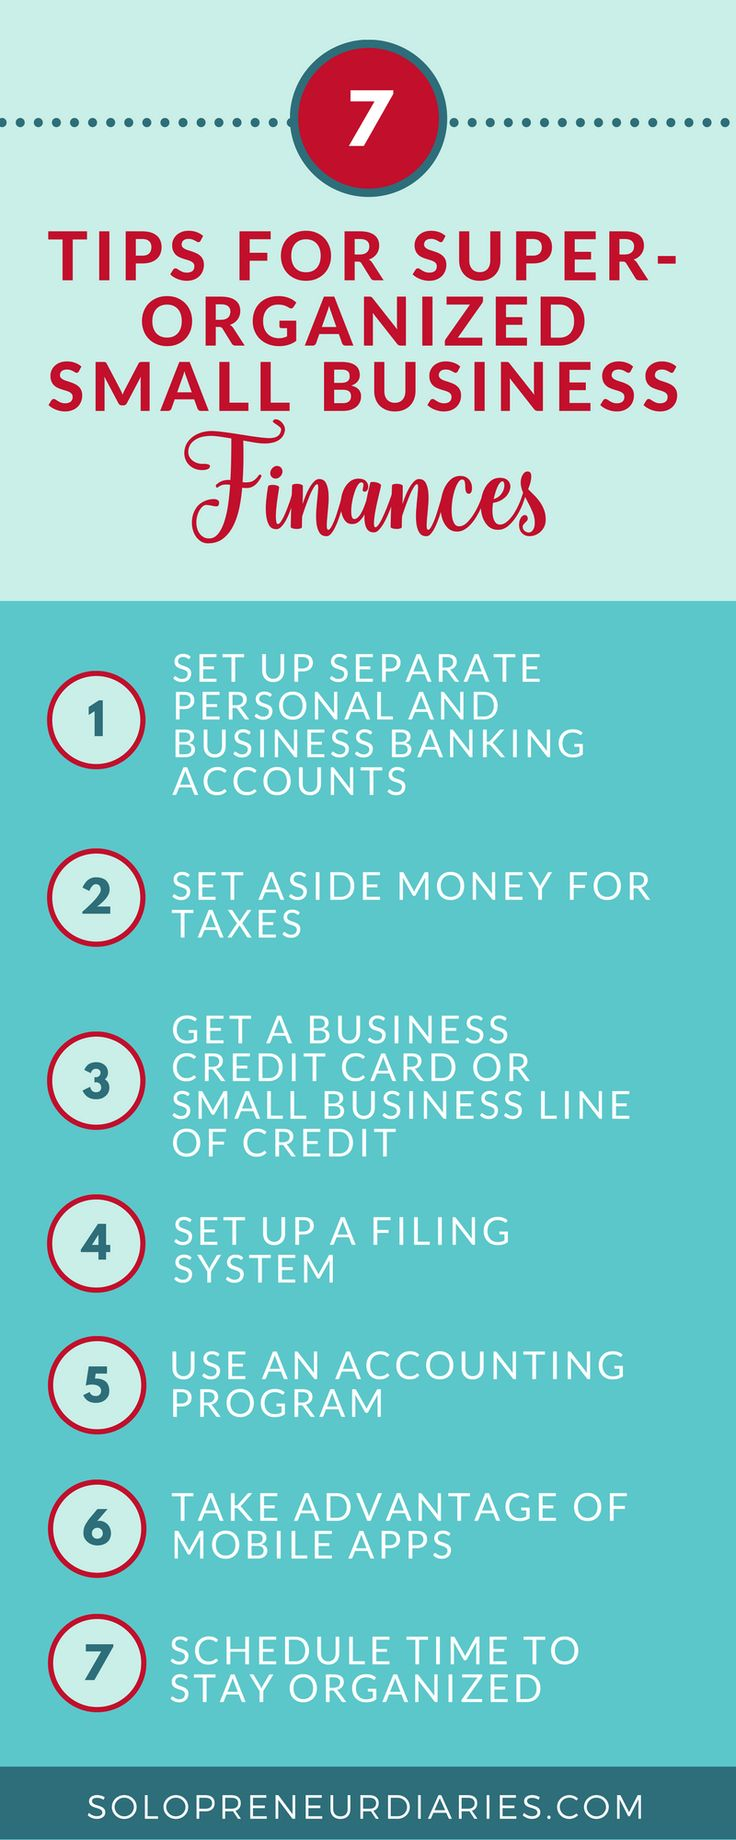 Small Business Tips   As a small business owner, there is always something that needs to be done and it's easy to put off finances for another day. And that's how chaos happens. Stay on top of your small business finances with these seven simple tips.   E